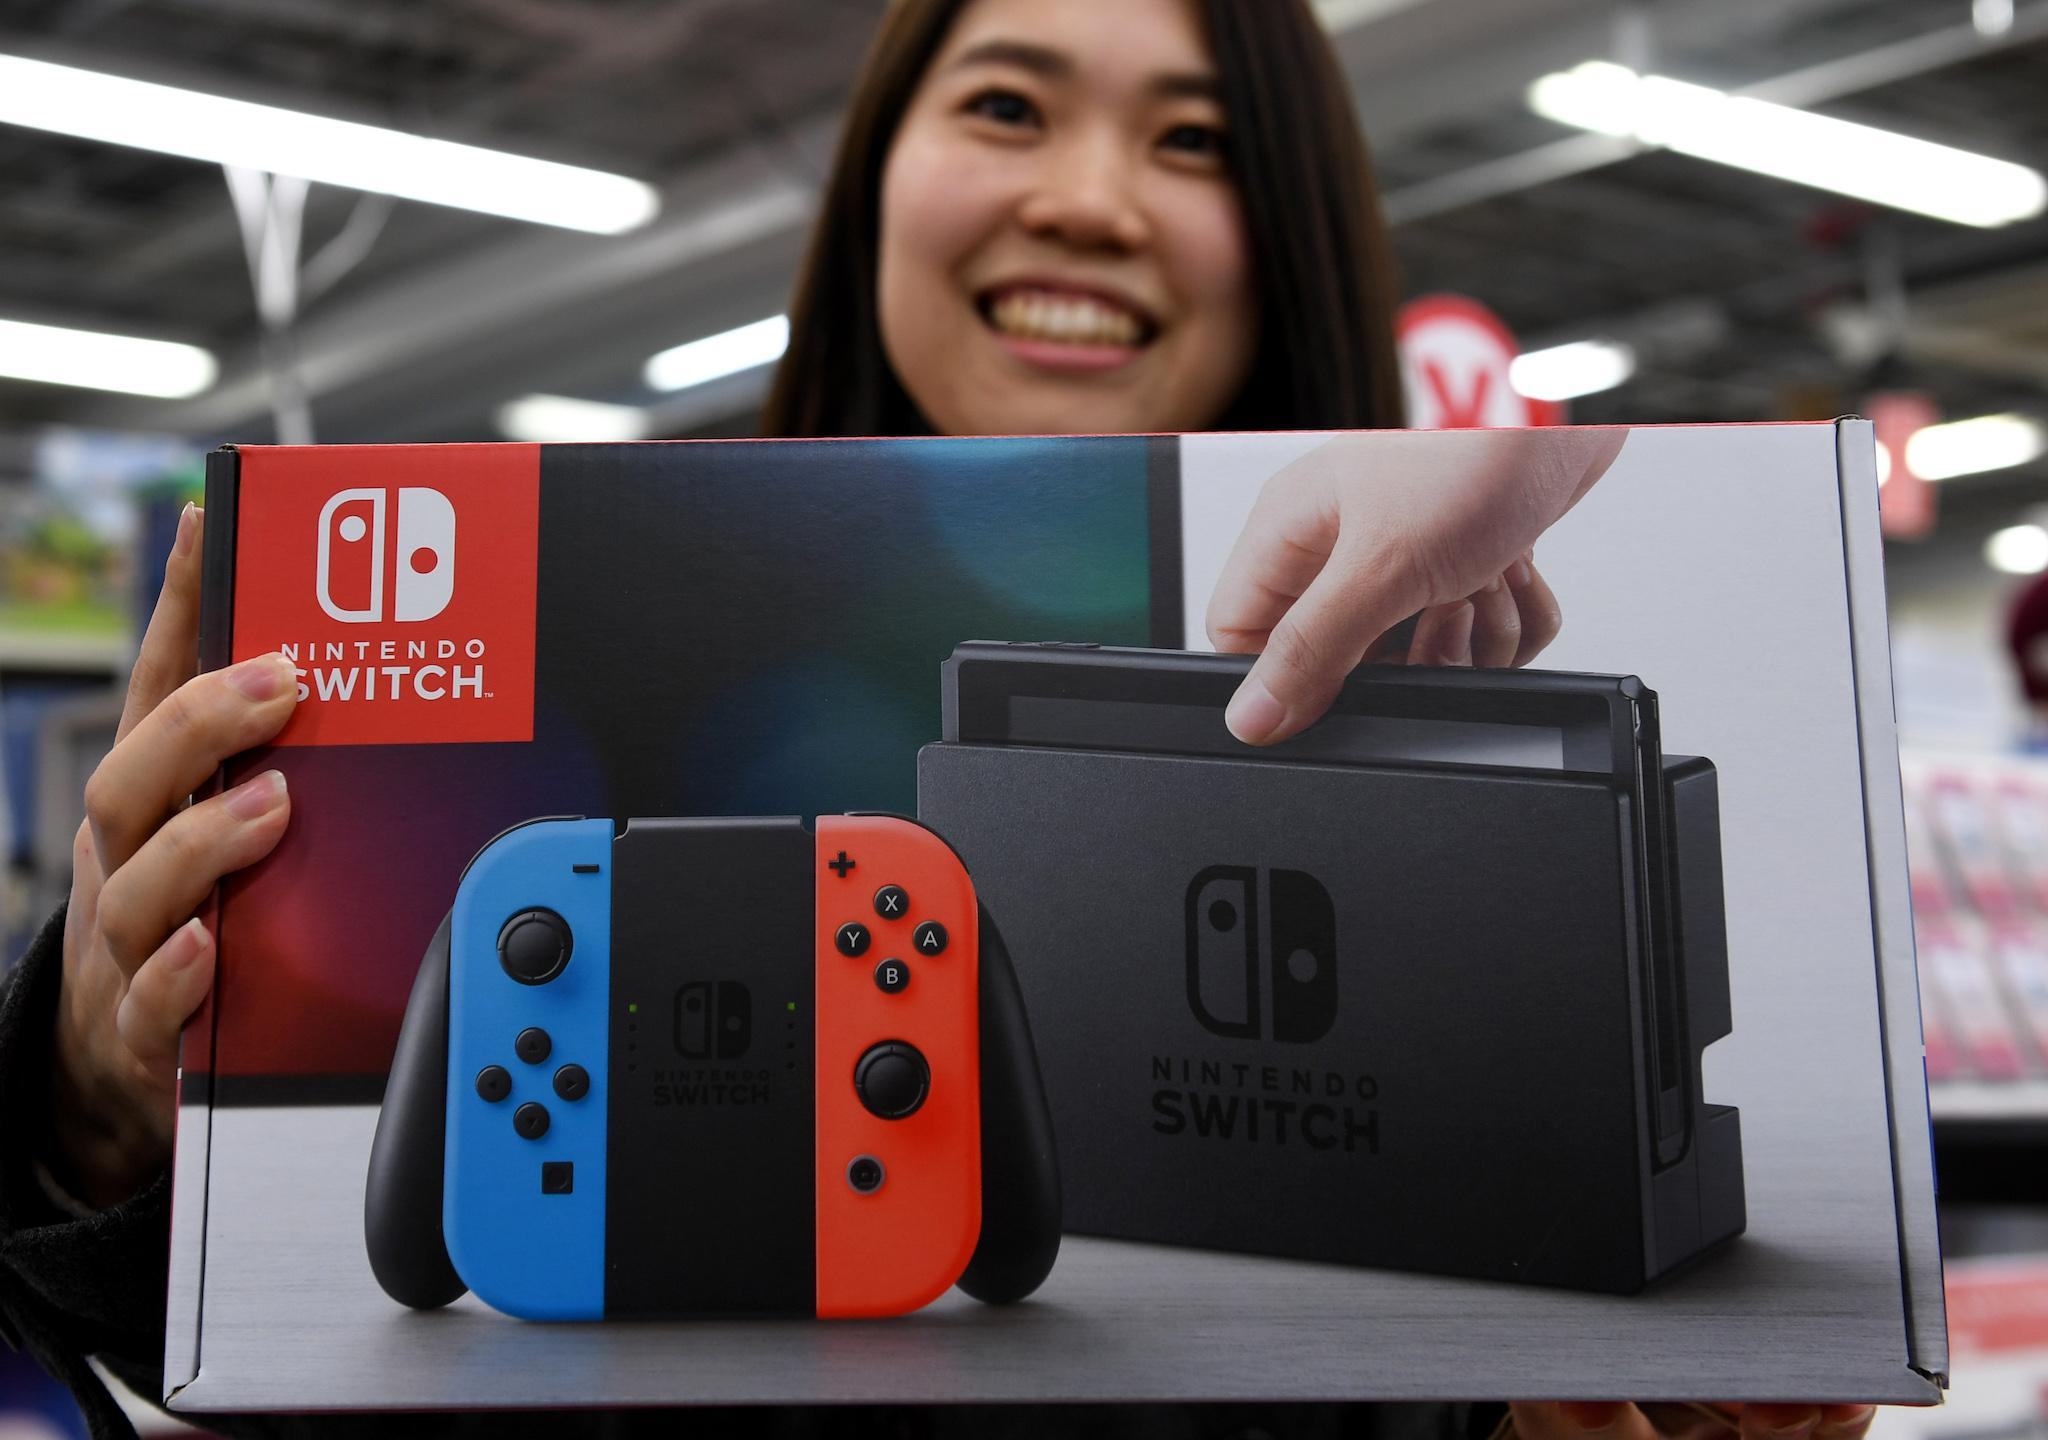 Nintendo Switch Goes On Sale, Sells Out Immediately